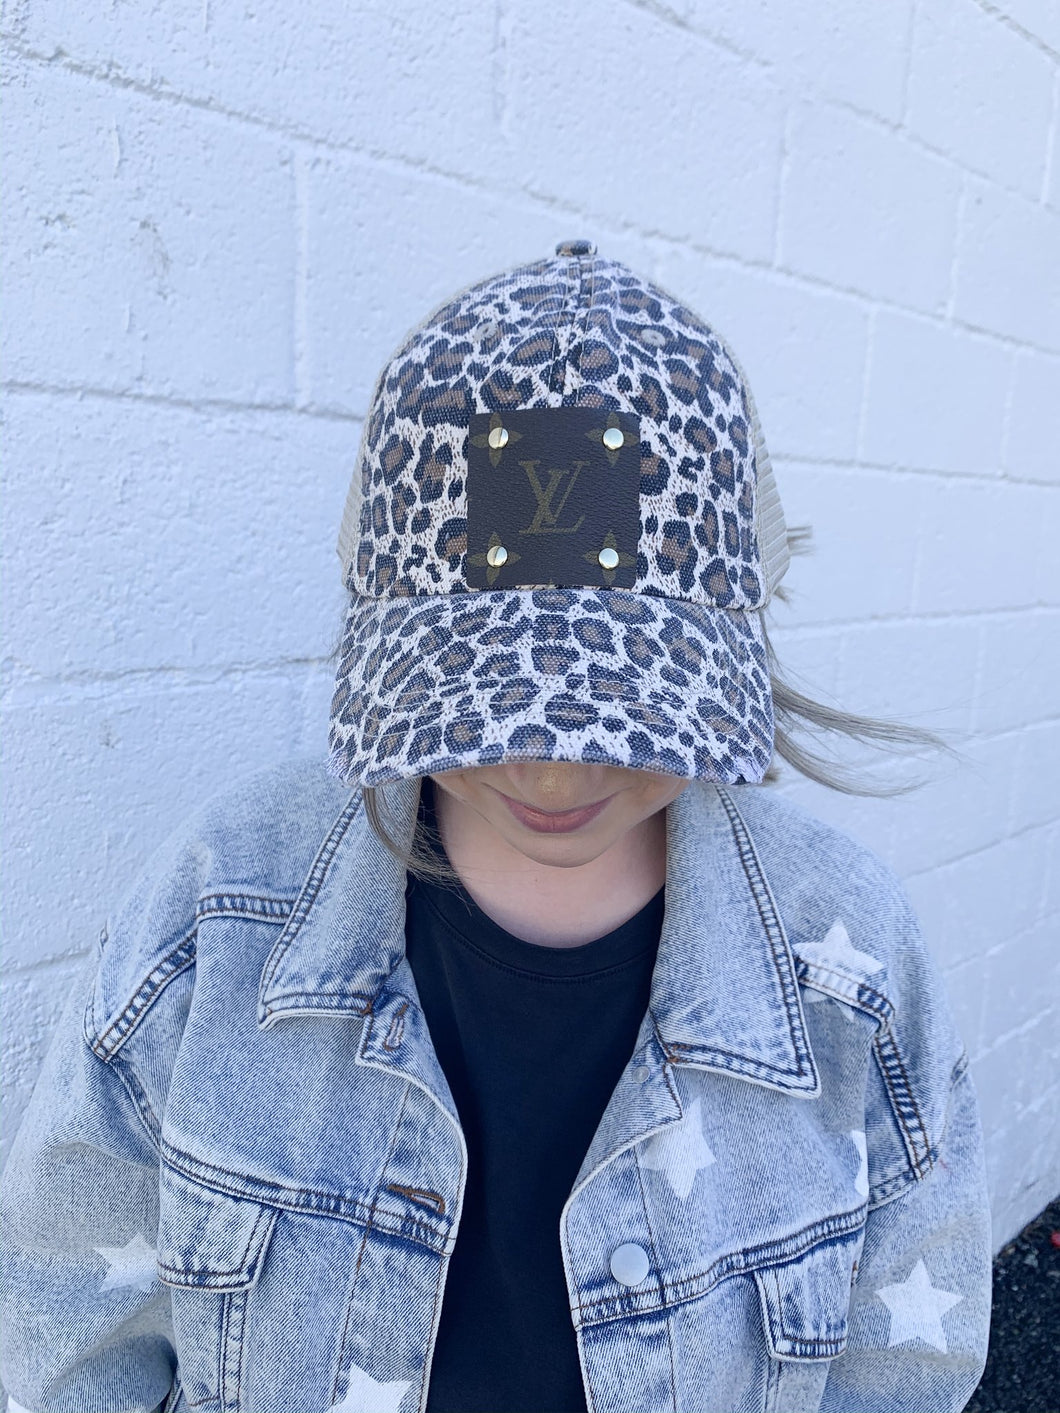 REPURPOSED AUTHENTIC LV BASEBALL HAT